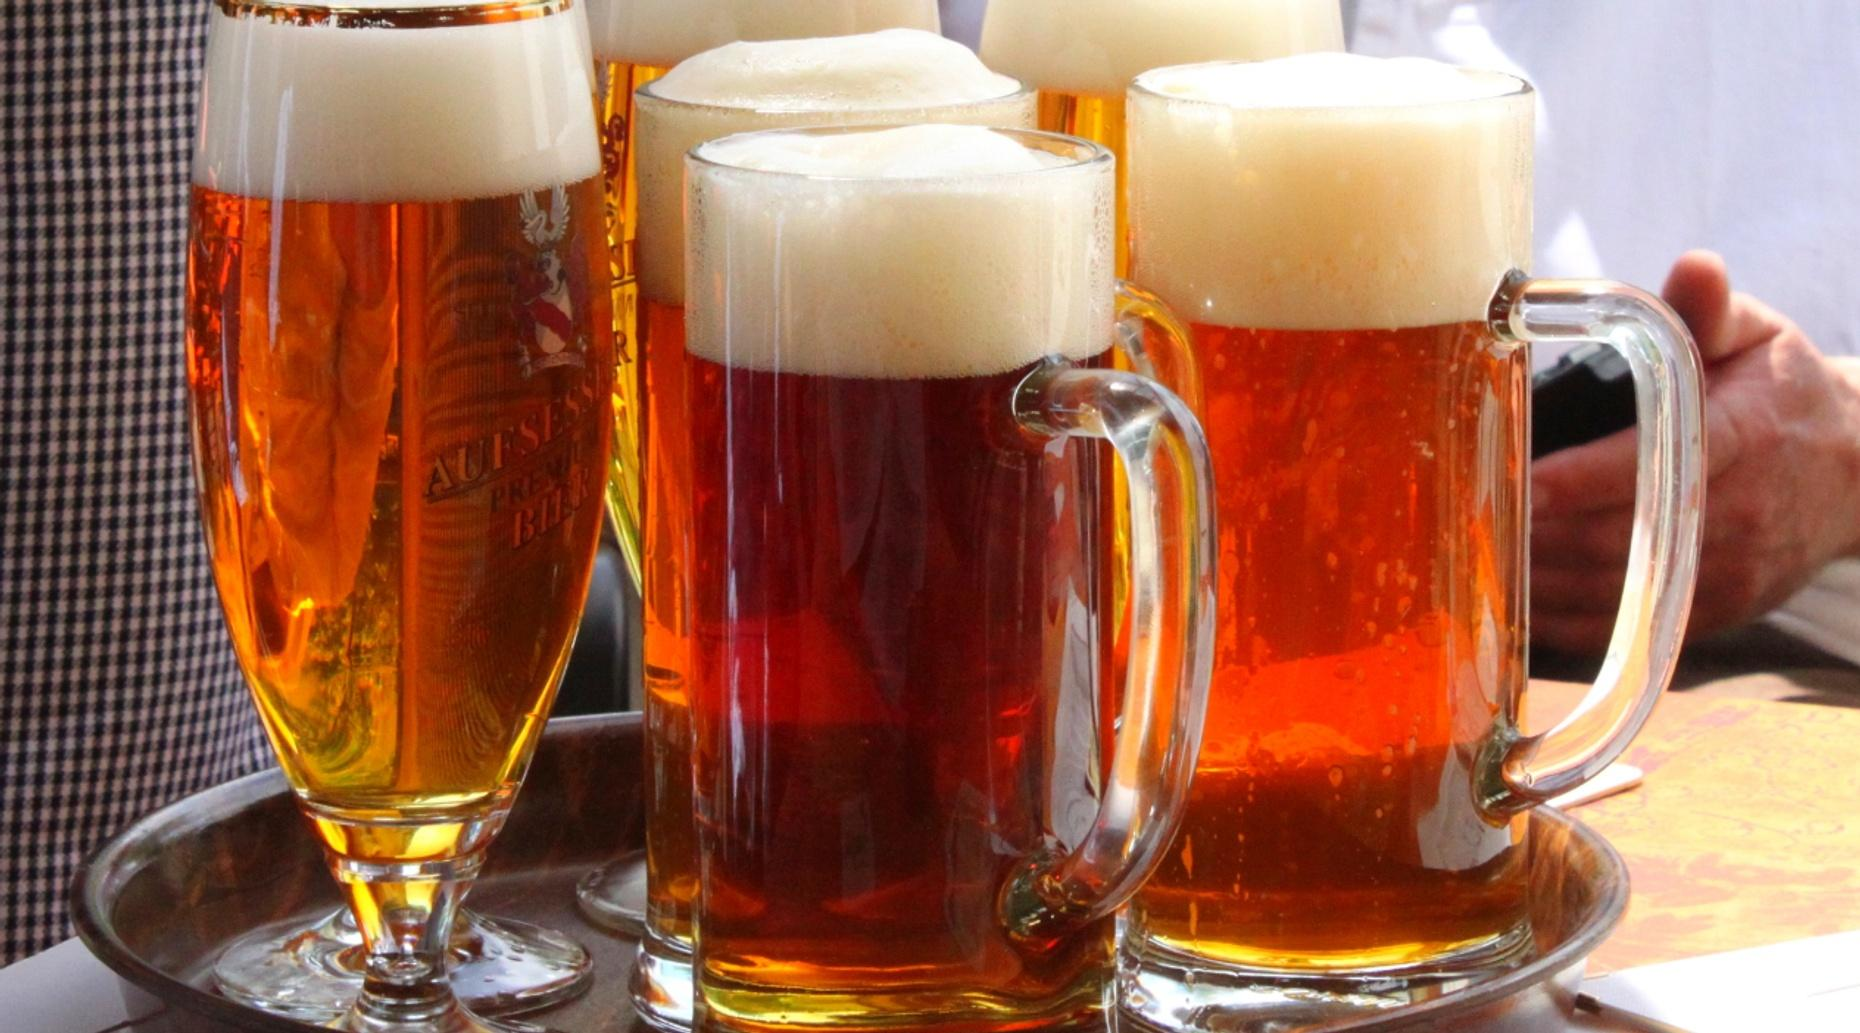 Guided Cruise on Lake Hopatcong with Local Beer Samples